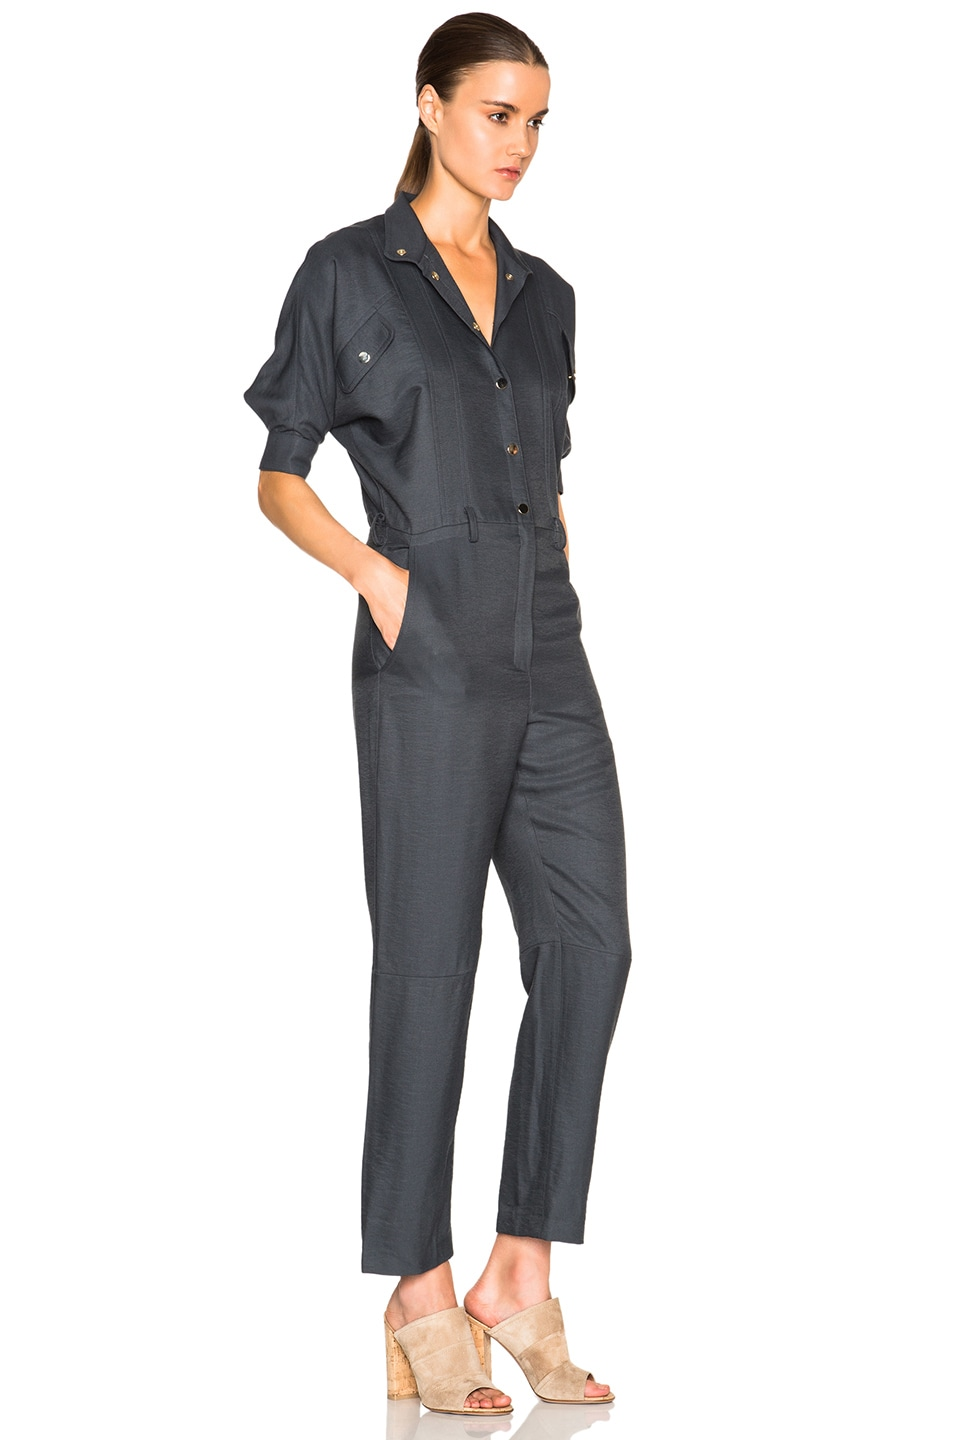 Image 3 of Carolina Ritz Charles 85 Jumpsuit in Blue